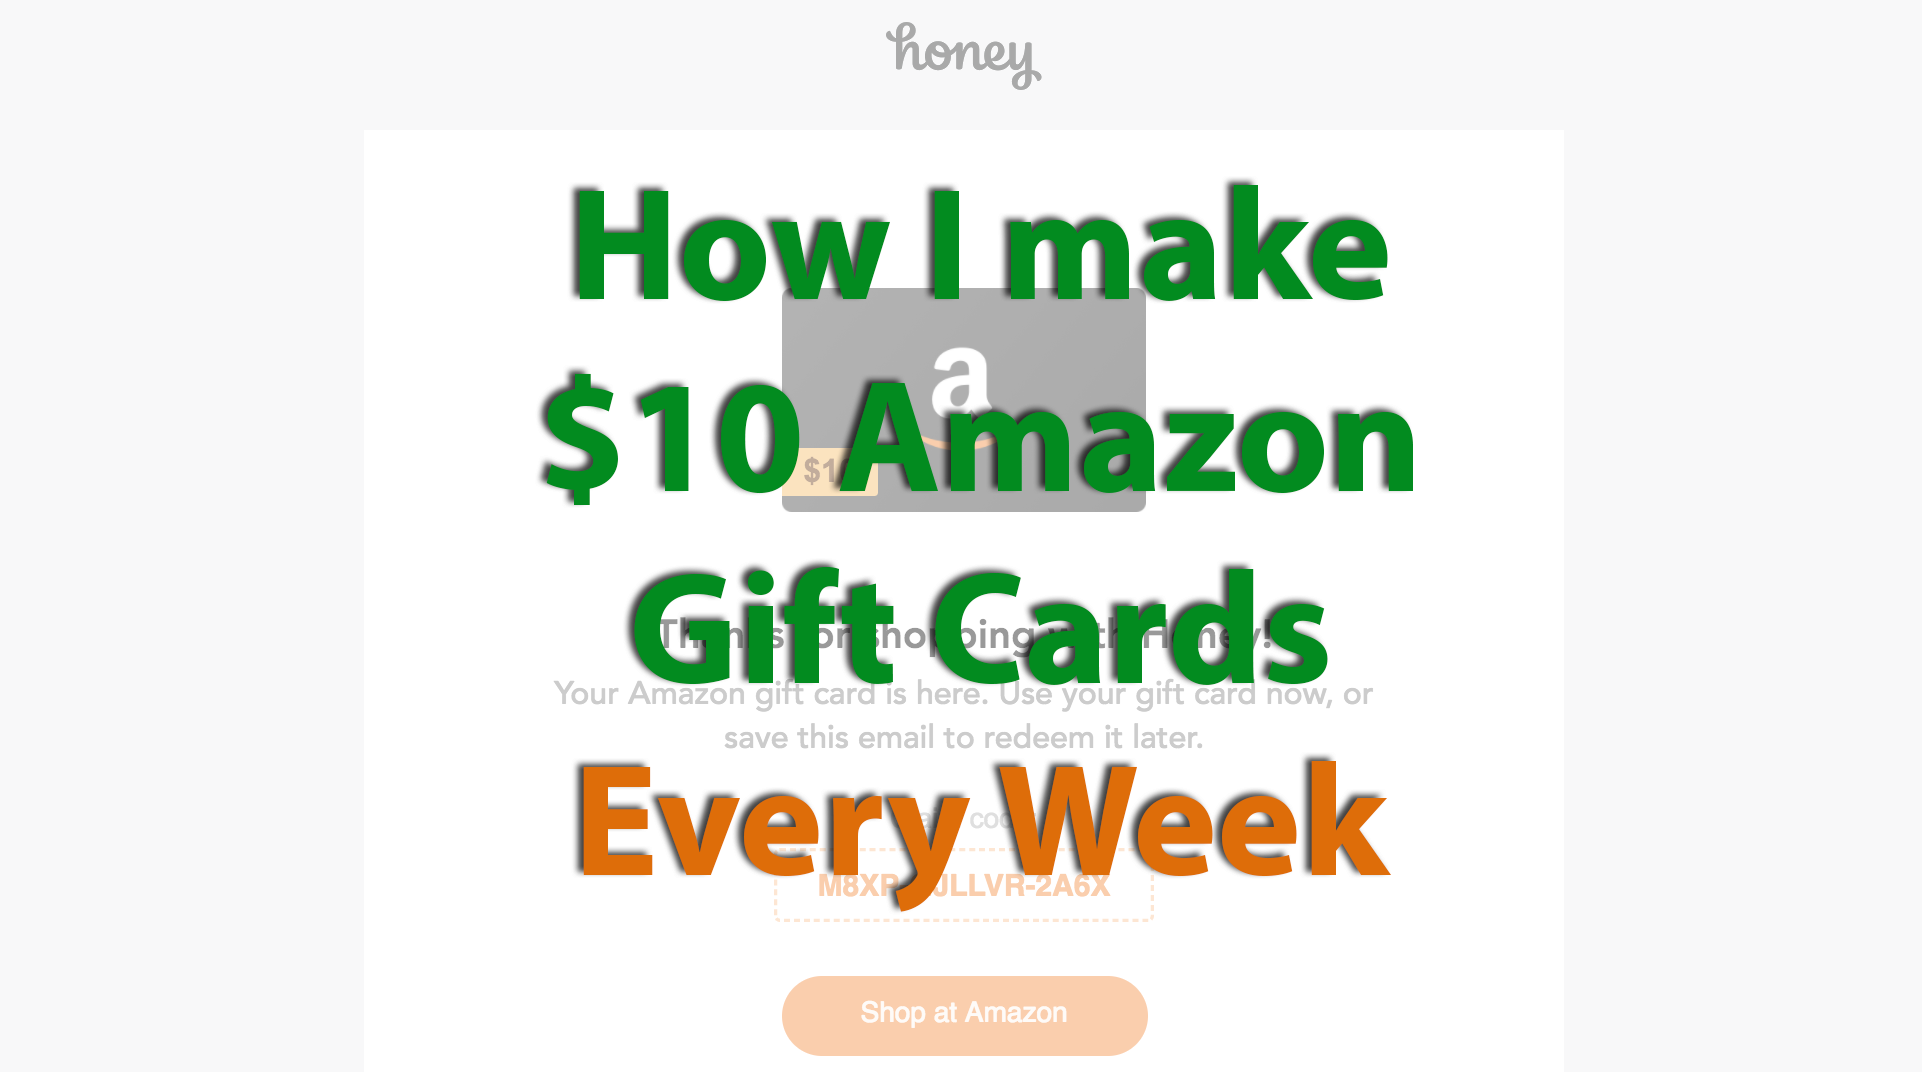 honey app proof I earn $10 Amazon giftcard from Honey